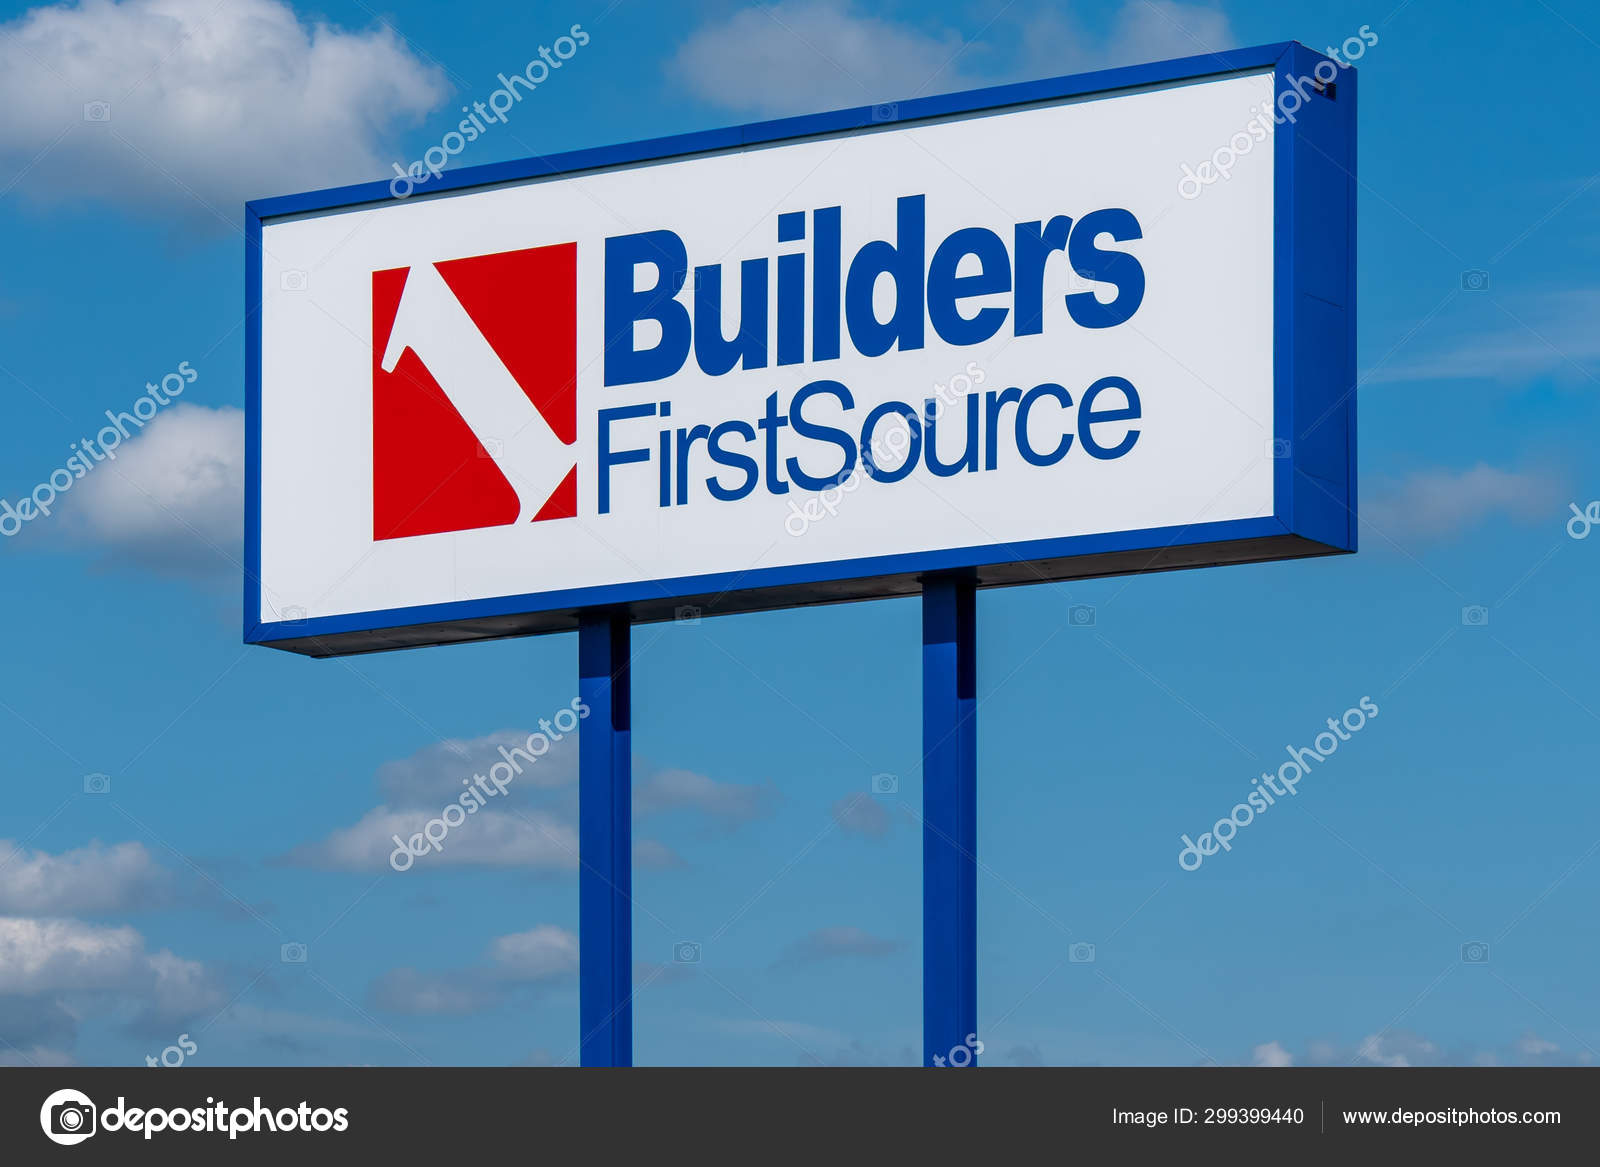 Builders FirstSource Exterior and Trademark Logo 12